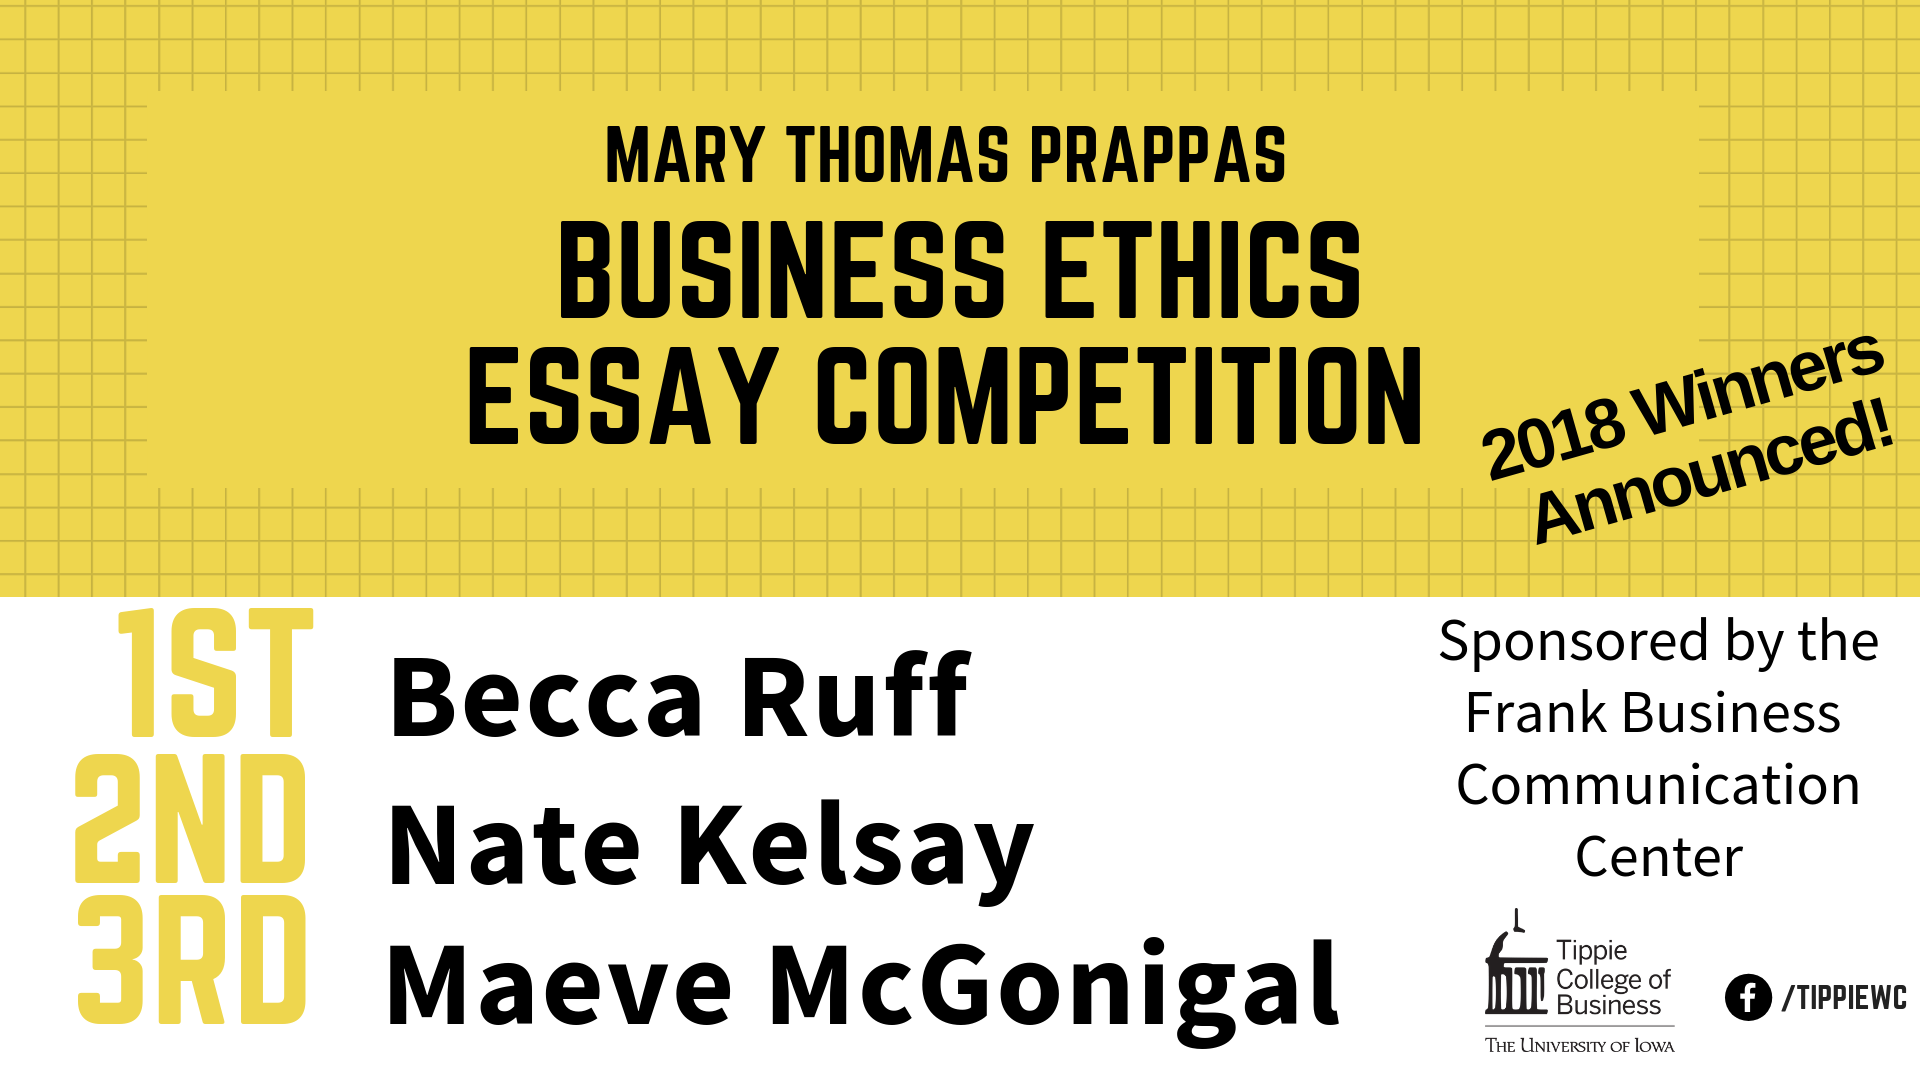 Kafka Essays The Judith R Frank Business Communication Center Is Pleased To Announce  The Winners Of The  Mary Thomas Prappas Business Ethics Essay  Competition Magical Realism Essay also Best Essay On Global Warming  Mary Thomas Prappas Ethics Essay Winners Announced  Describe A Person Essay Example